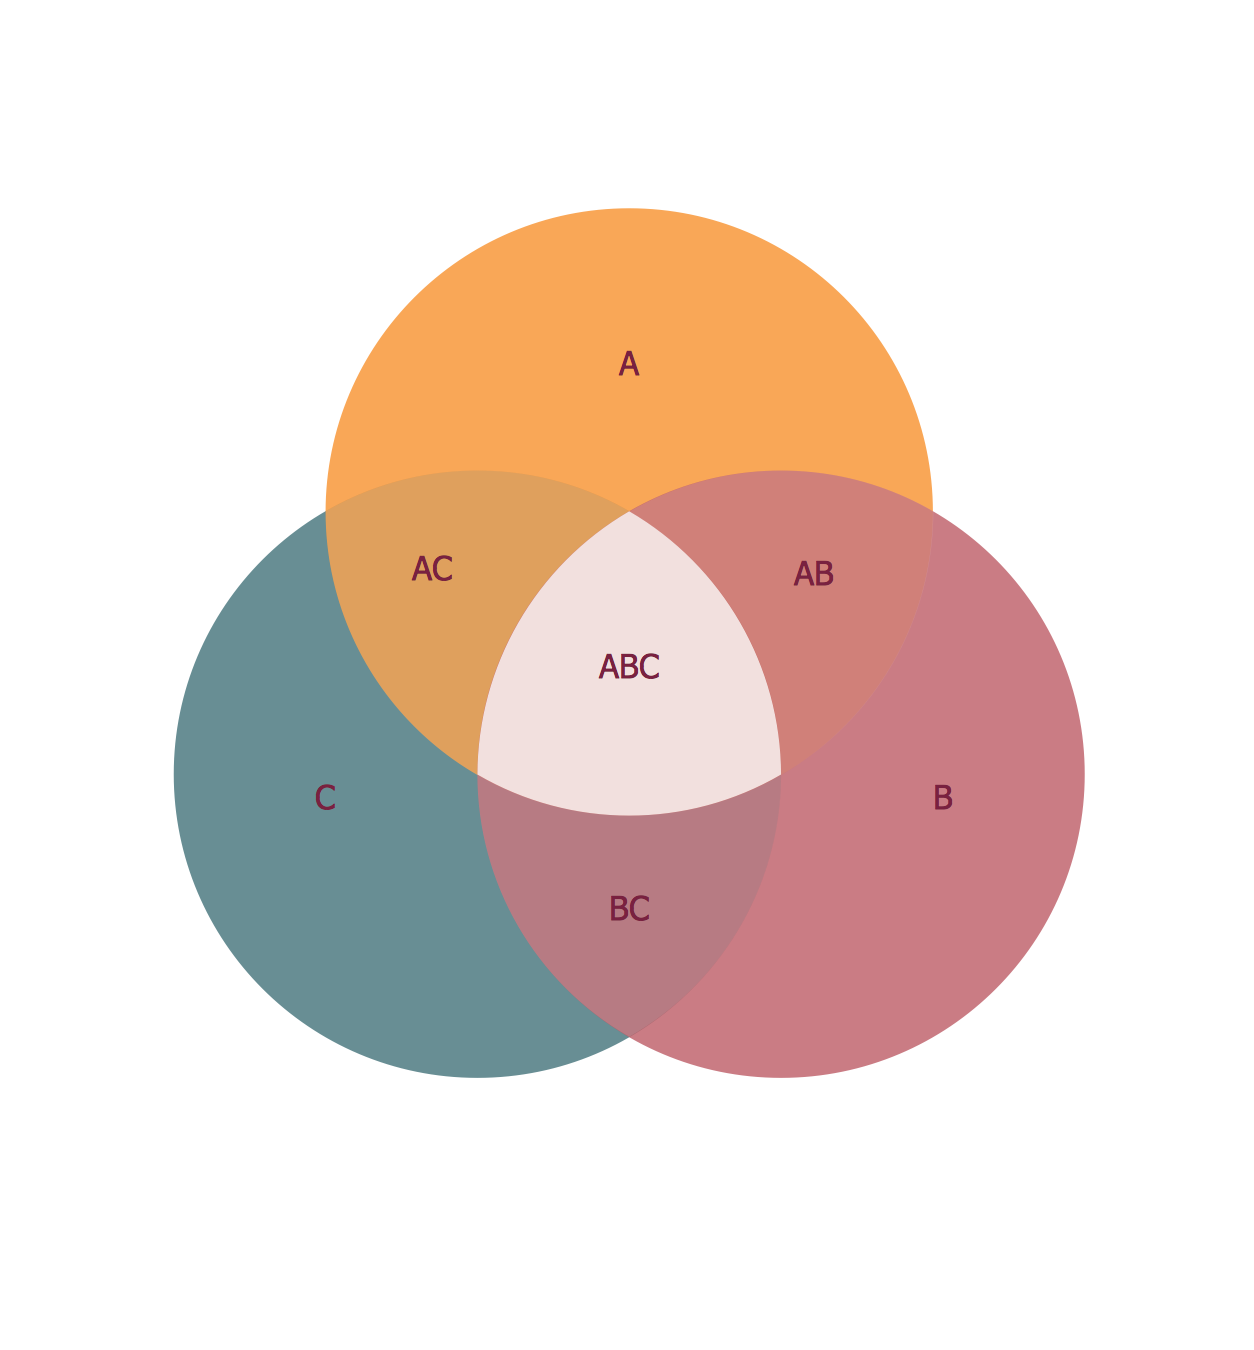 3 Circle Venn Diagram Template Venns Construction For Sets Intersection Wiring The Diagrams Visualize All Possible Logical Intersections Between Several On This Example You Can See Of